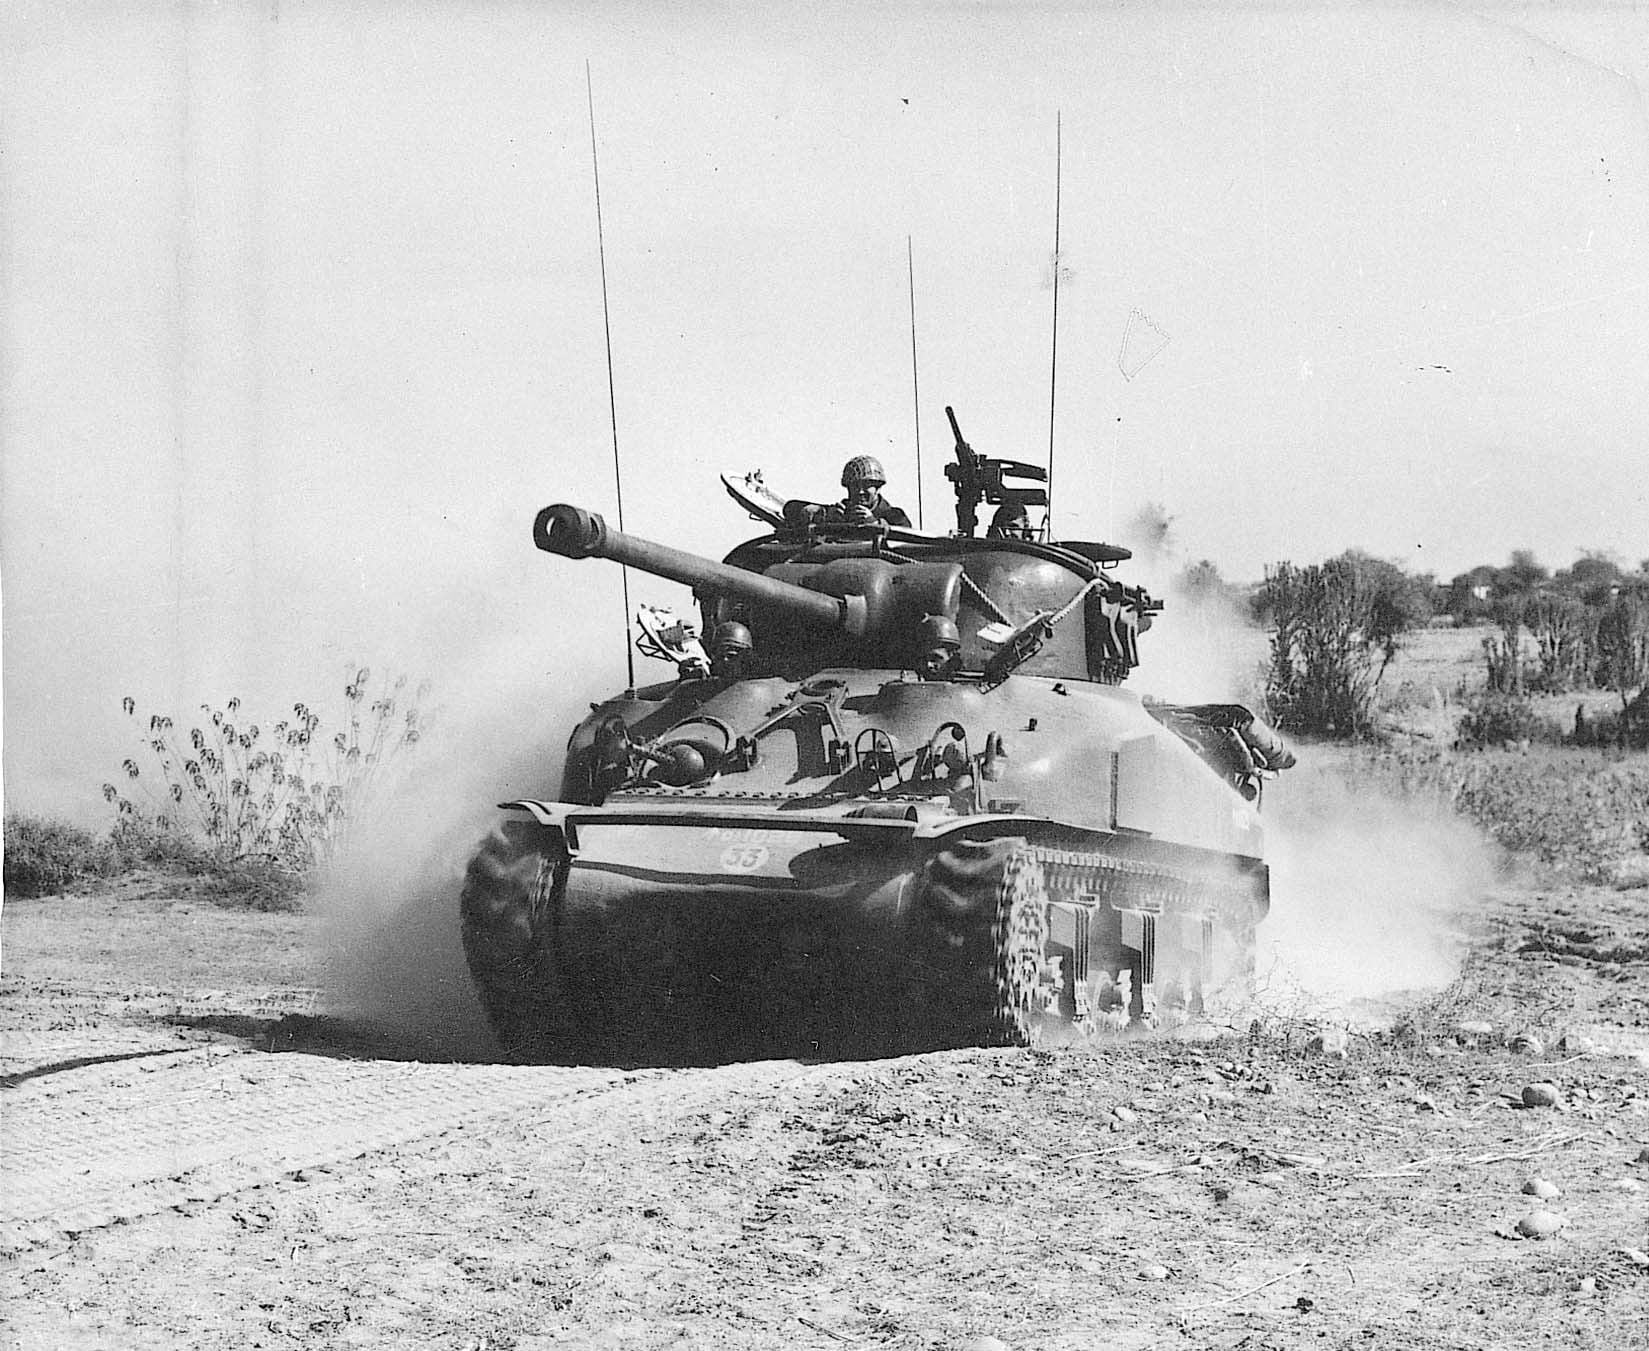 A Pakistani tank on the move during the War of 1971 — White Star Archives